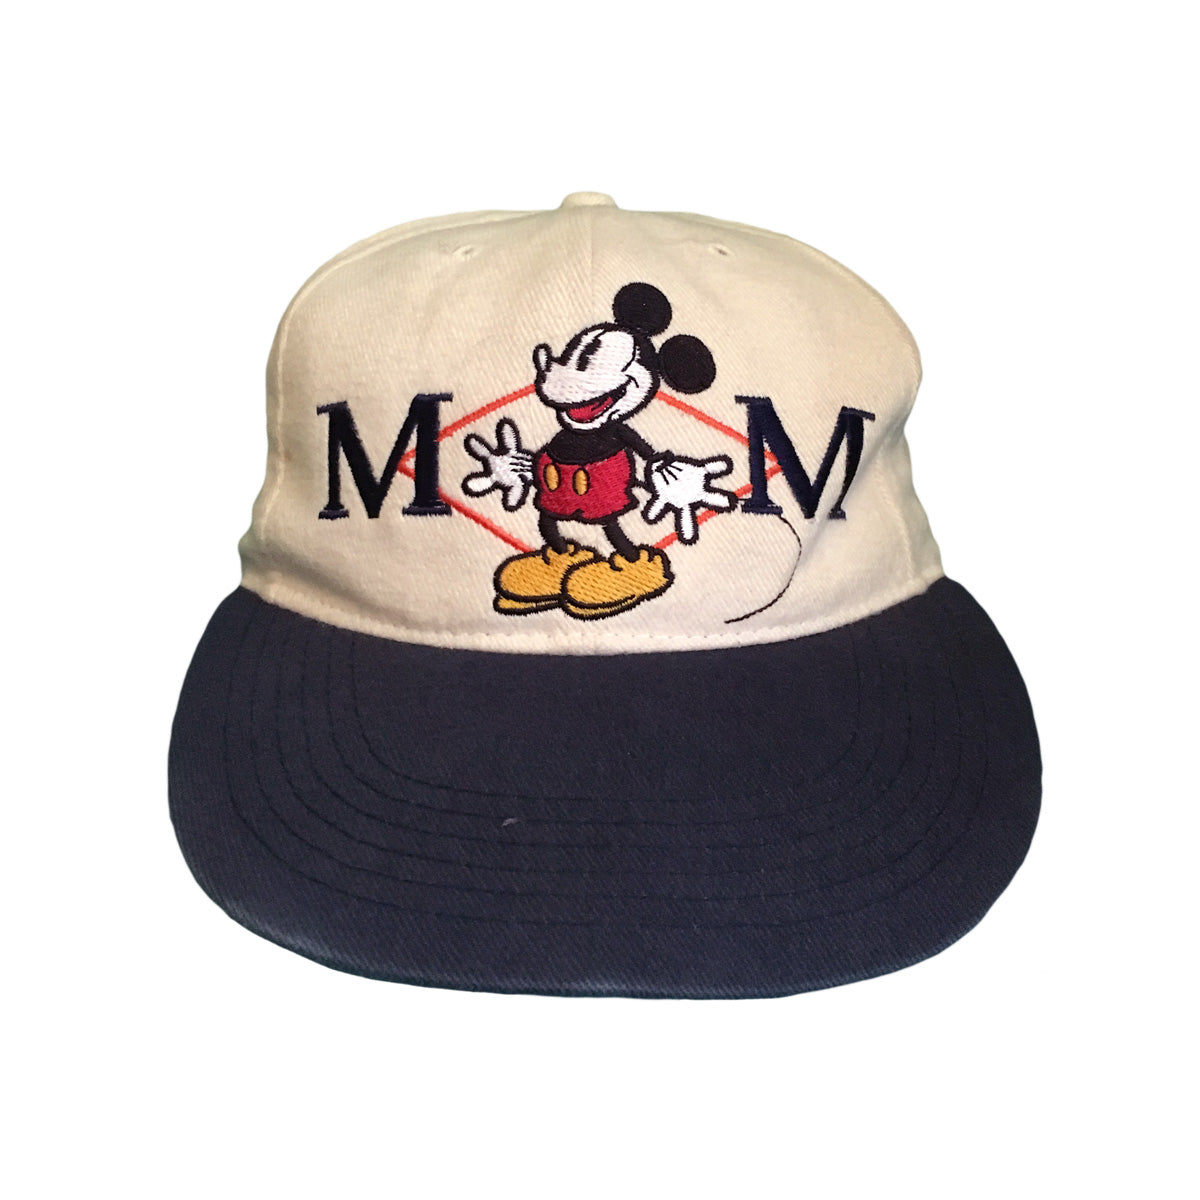 Mickey Mouse Disneyland Paris Baseball Cap